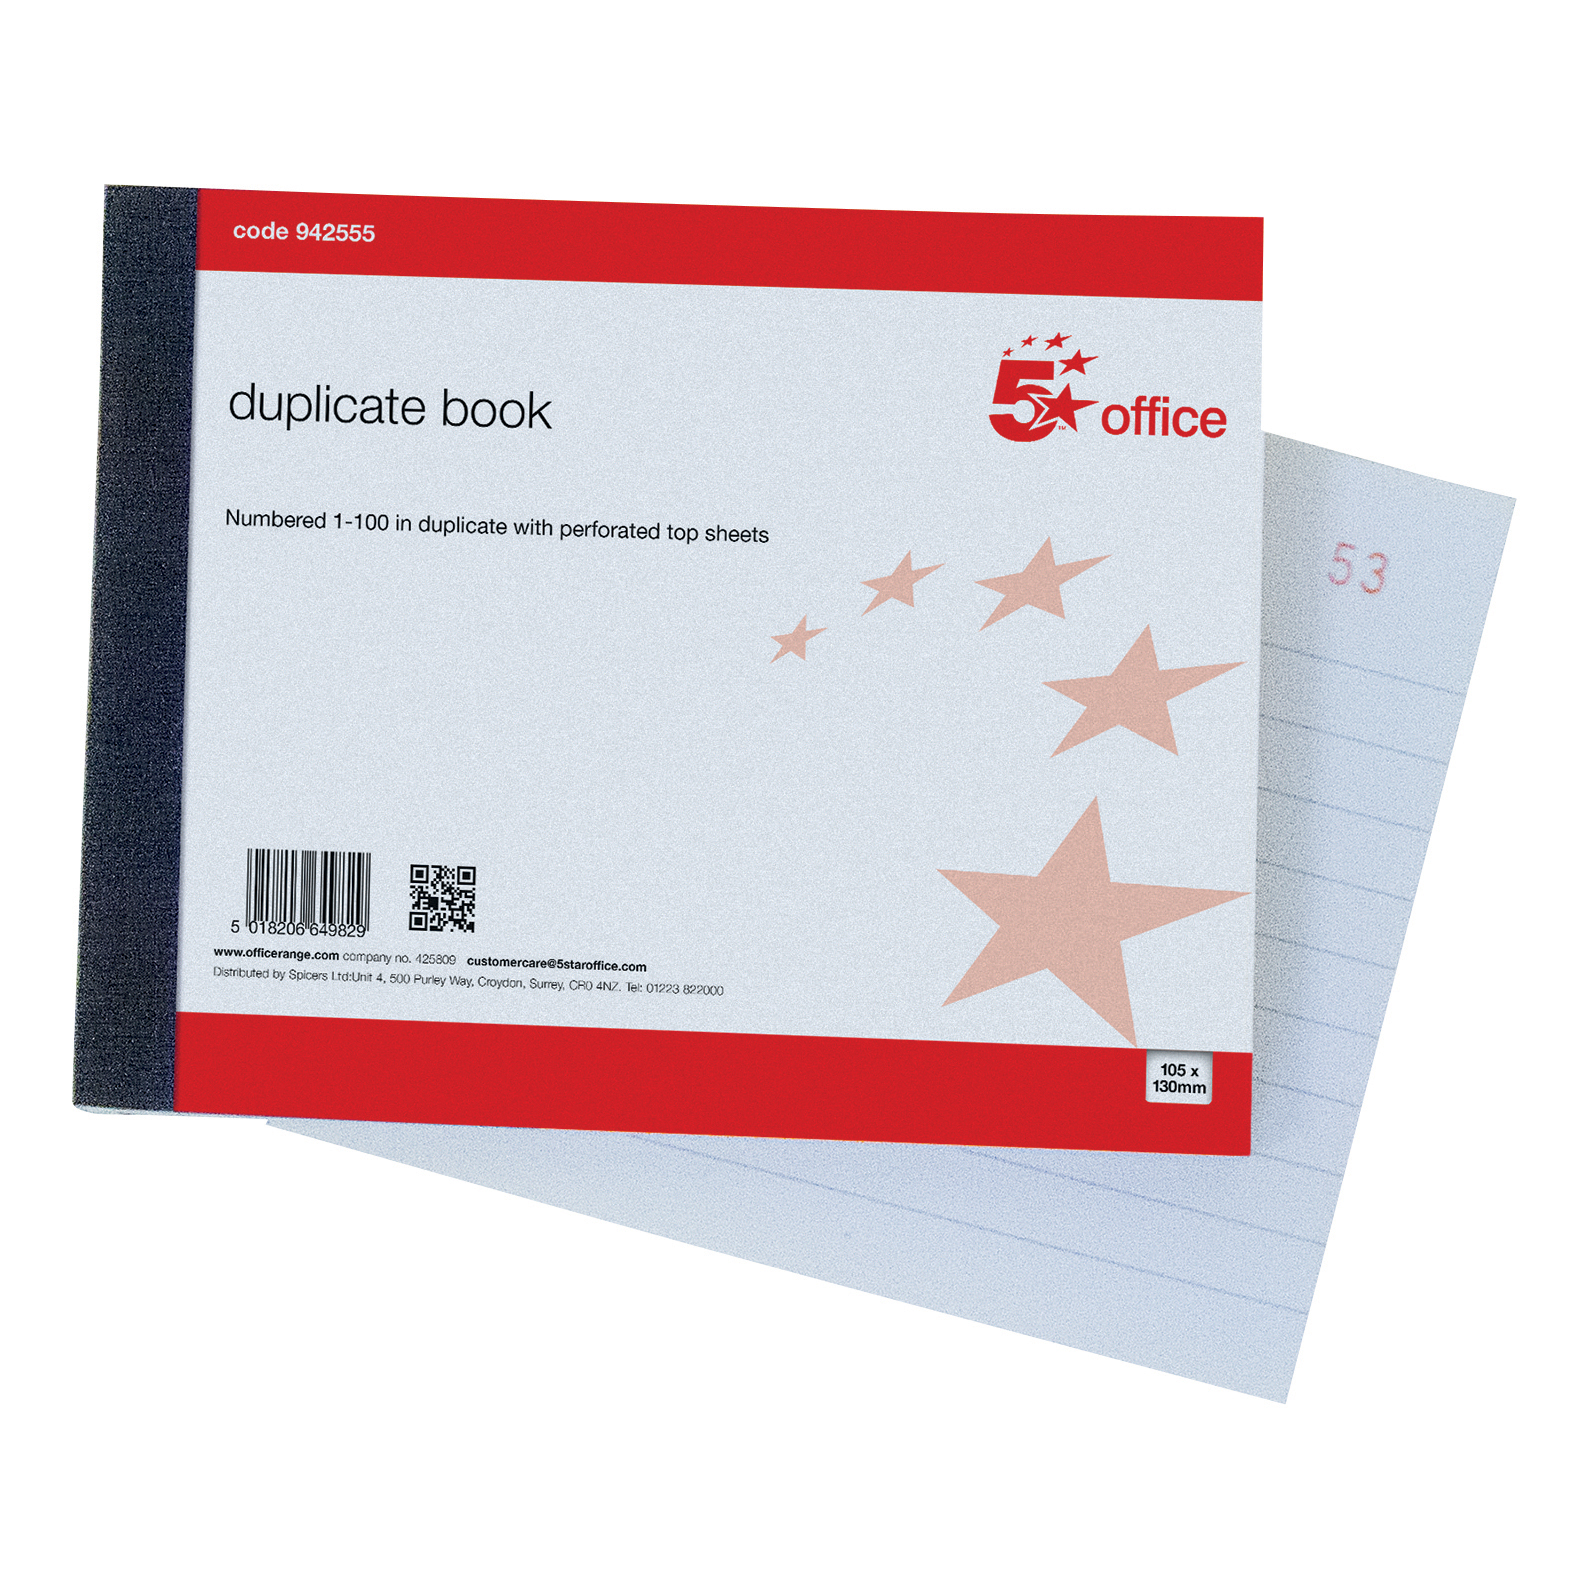 Duplicate 5 Star Office Duplicate Book with Carbon Ruled Indexed and Perforated 100 Sets 105x130mm